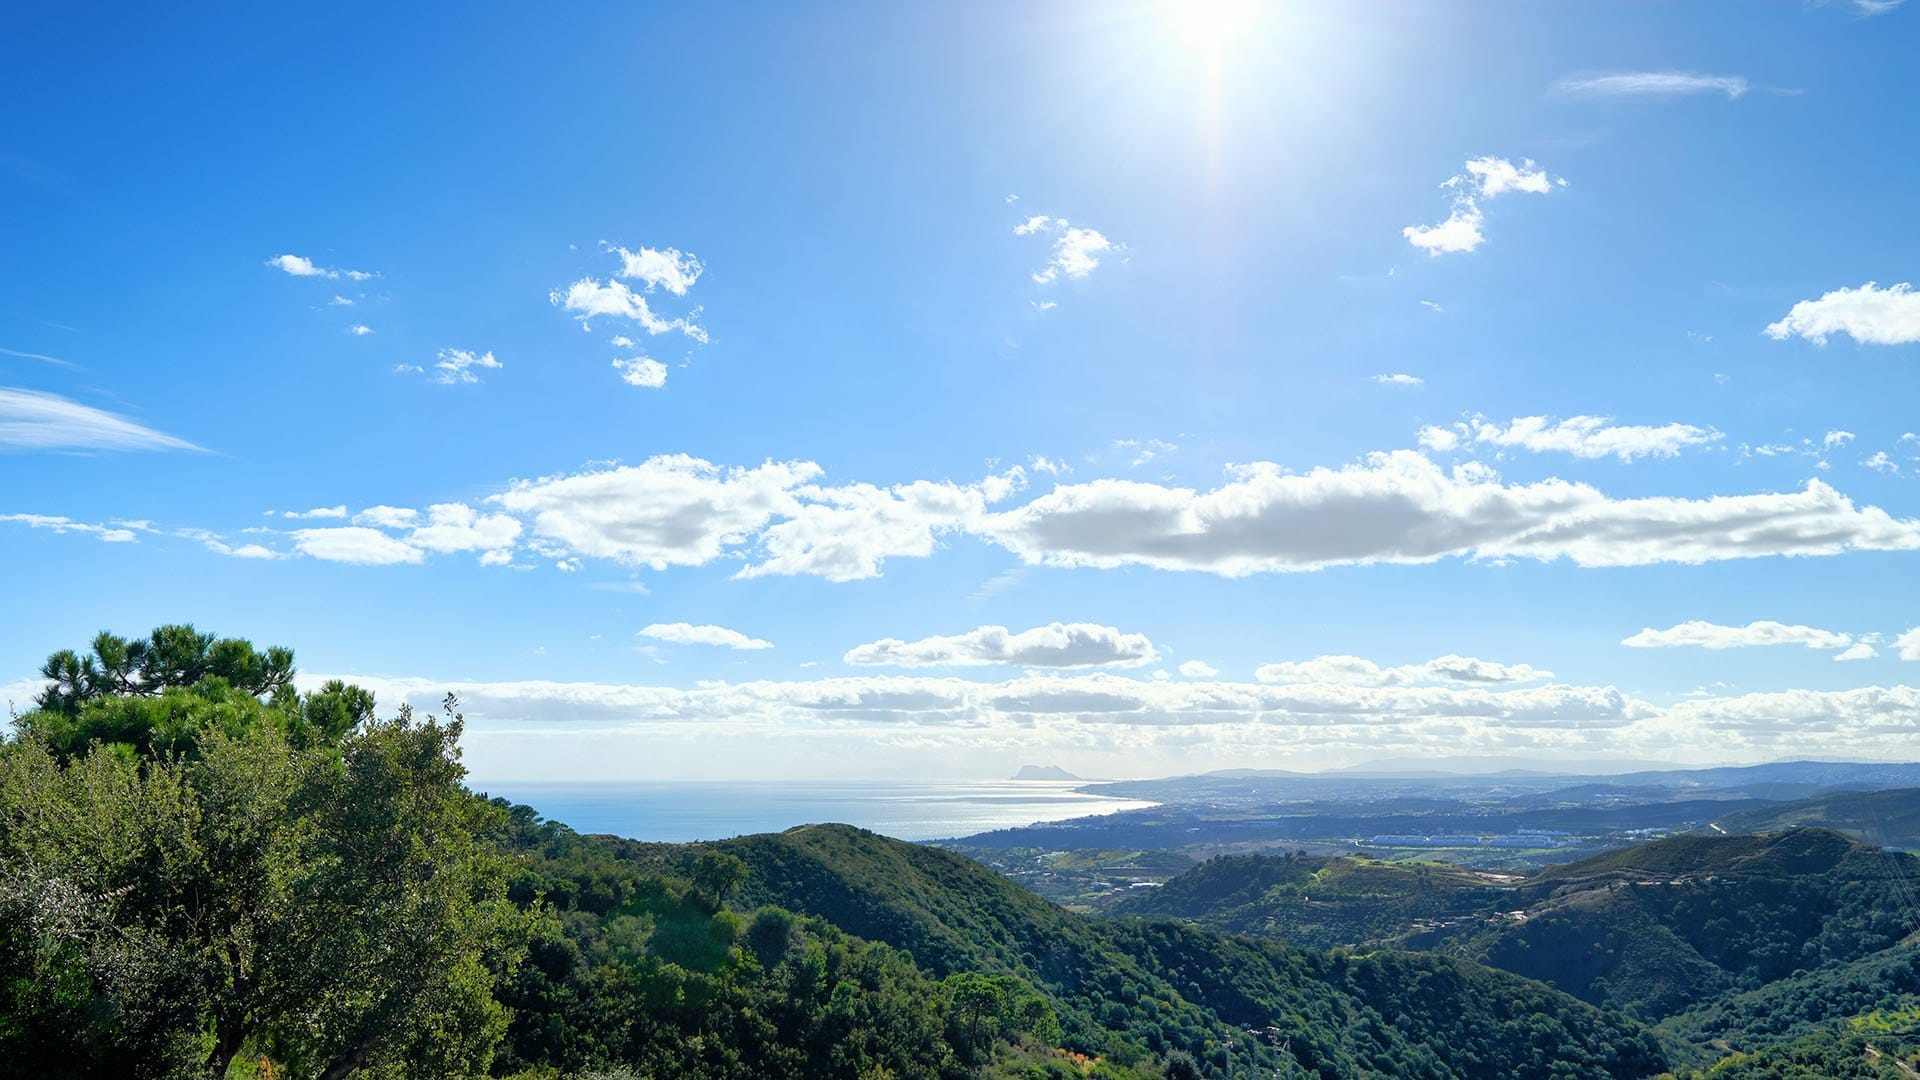 Finca El Quejigal: Fabulous finca with stunning views over the sea and the mountains